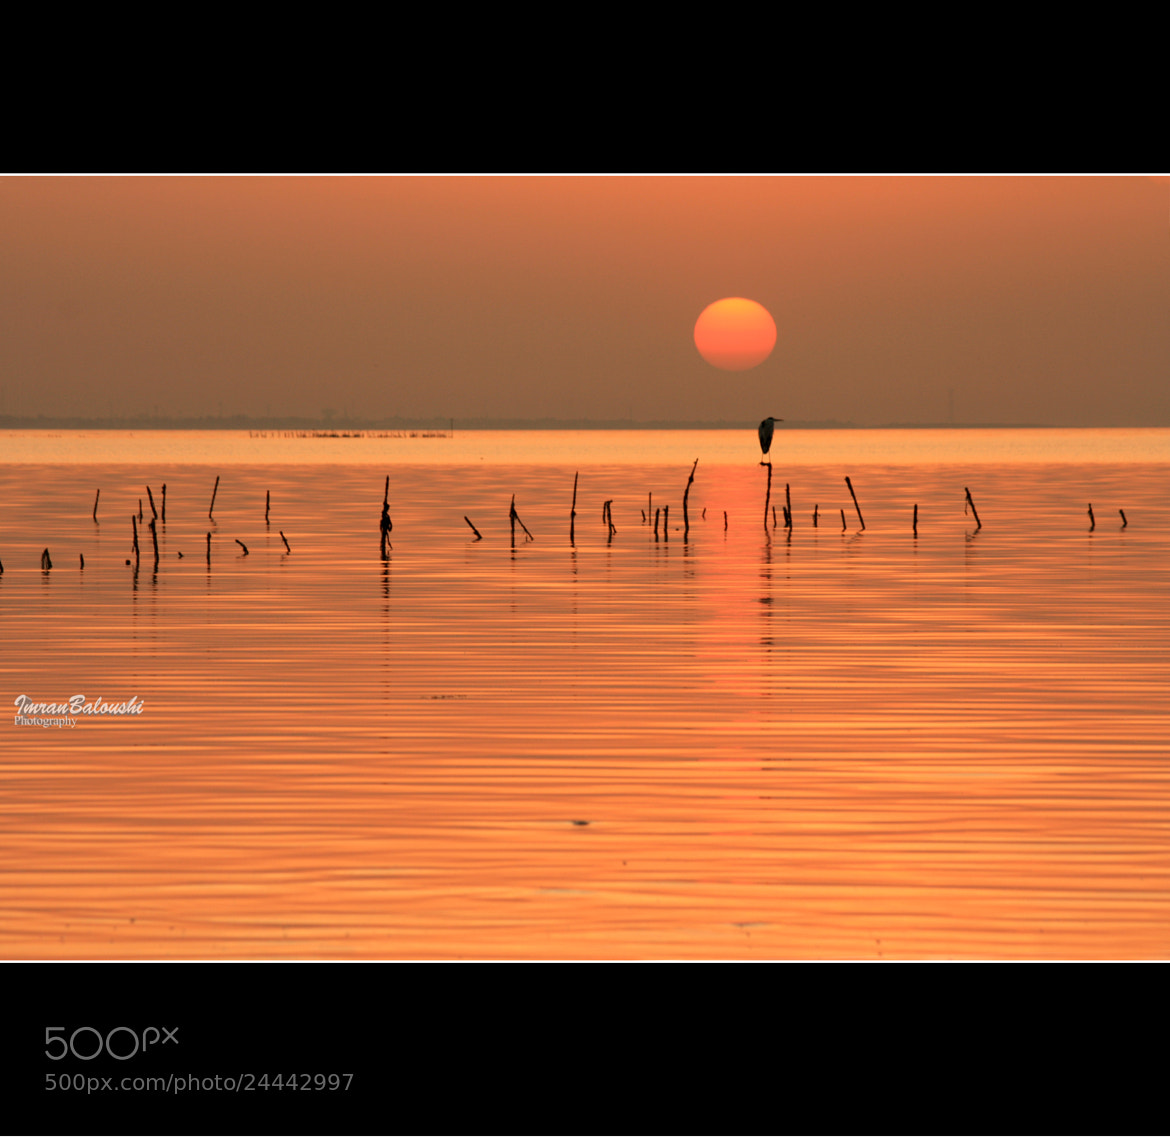 Photograph Sunrise by Imran Baloushi on 500px